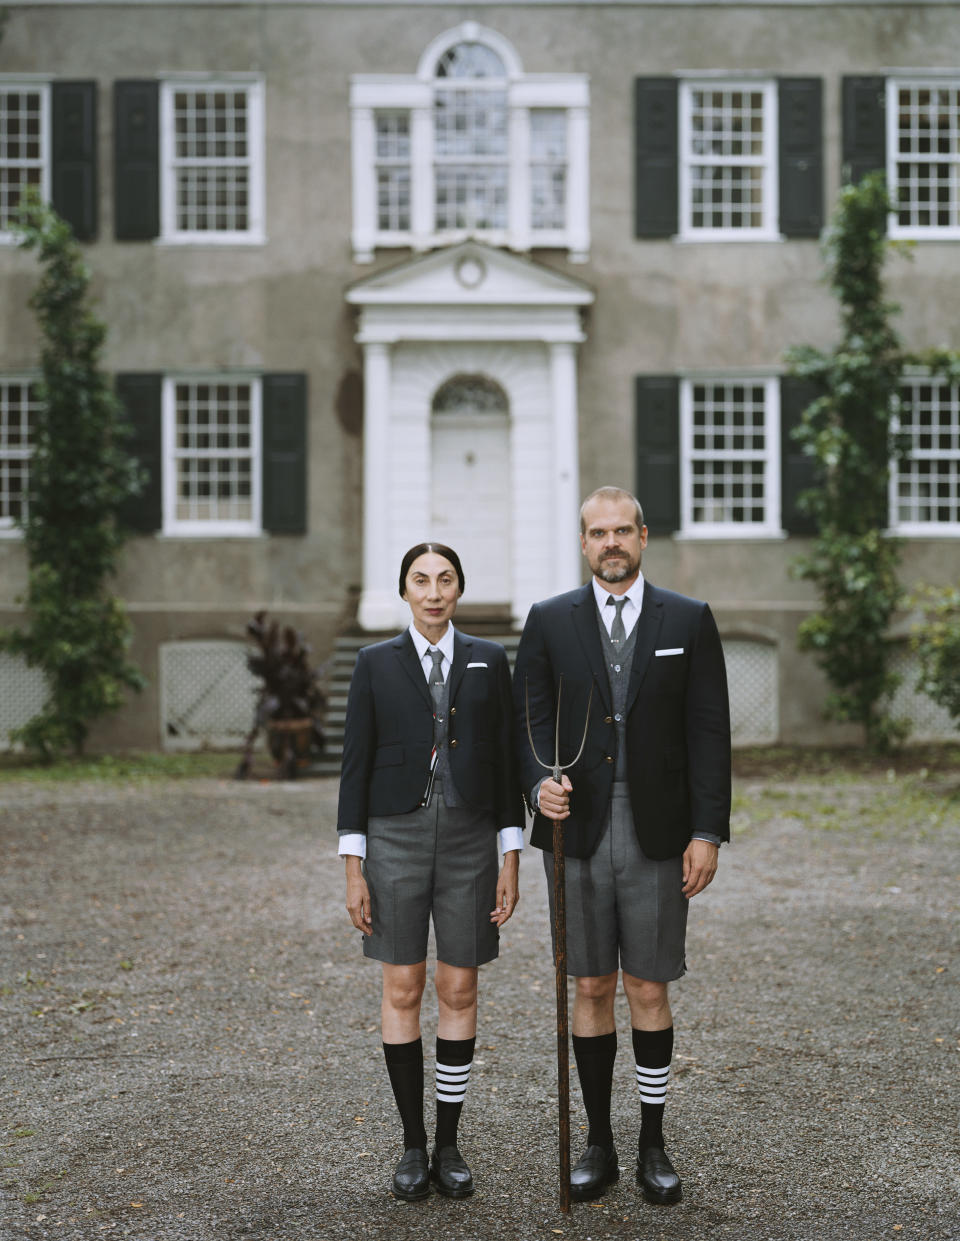 Thom Browne's latest project features Ahn Duong and David Harbour. - Credit: Courtesy of Thom Browne